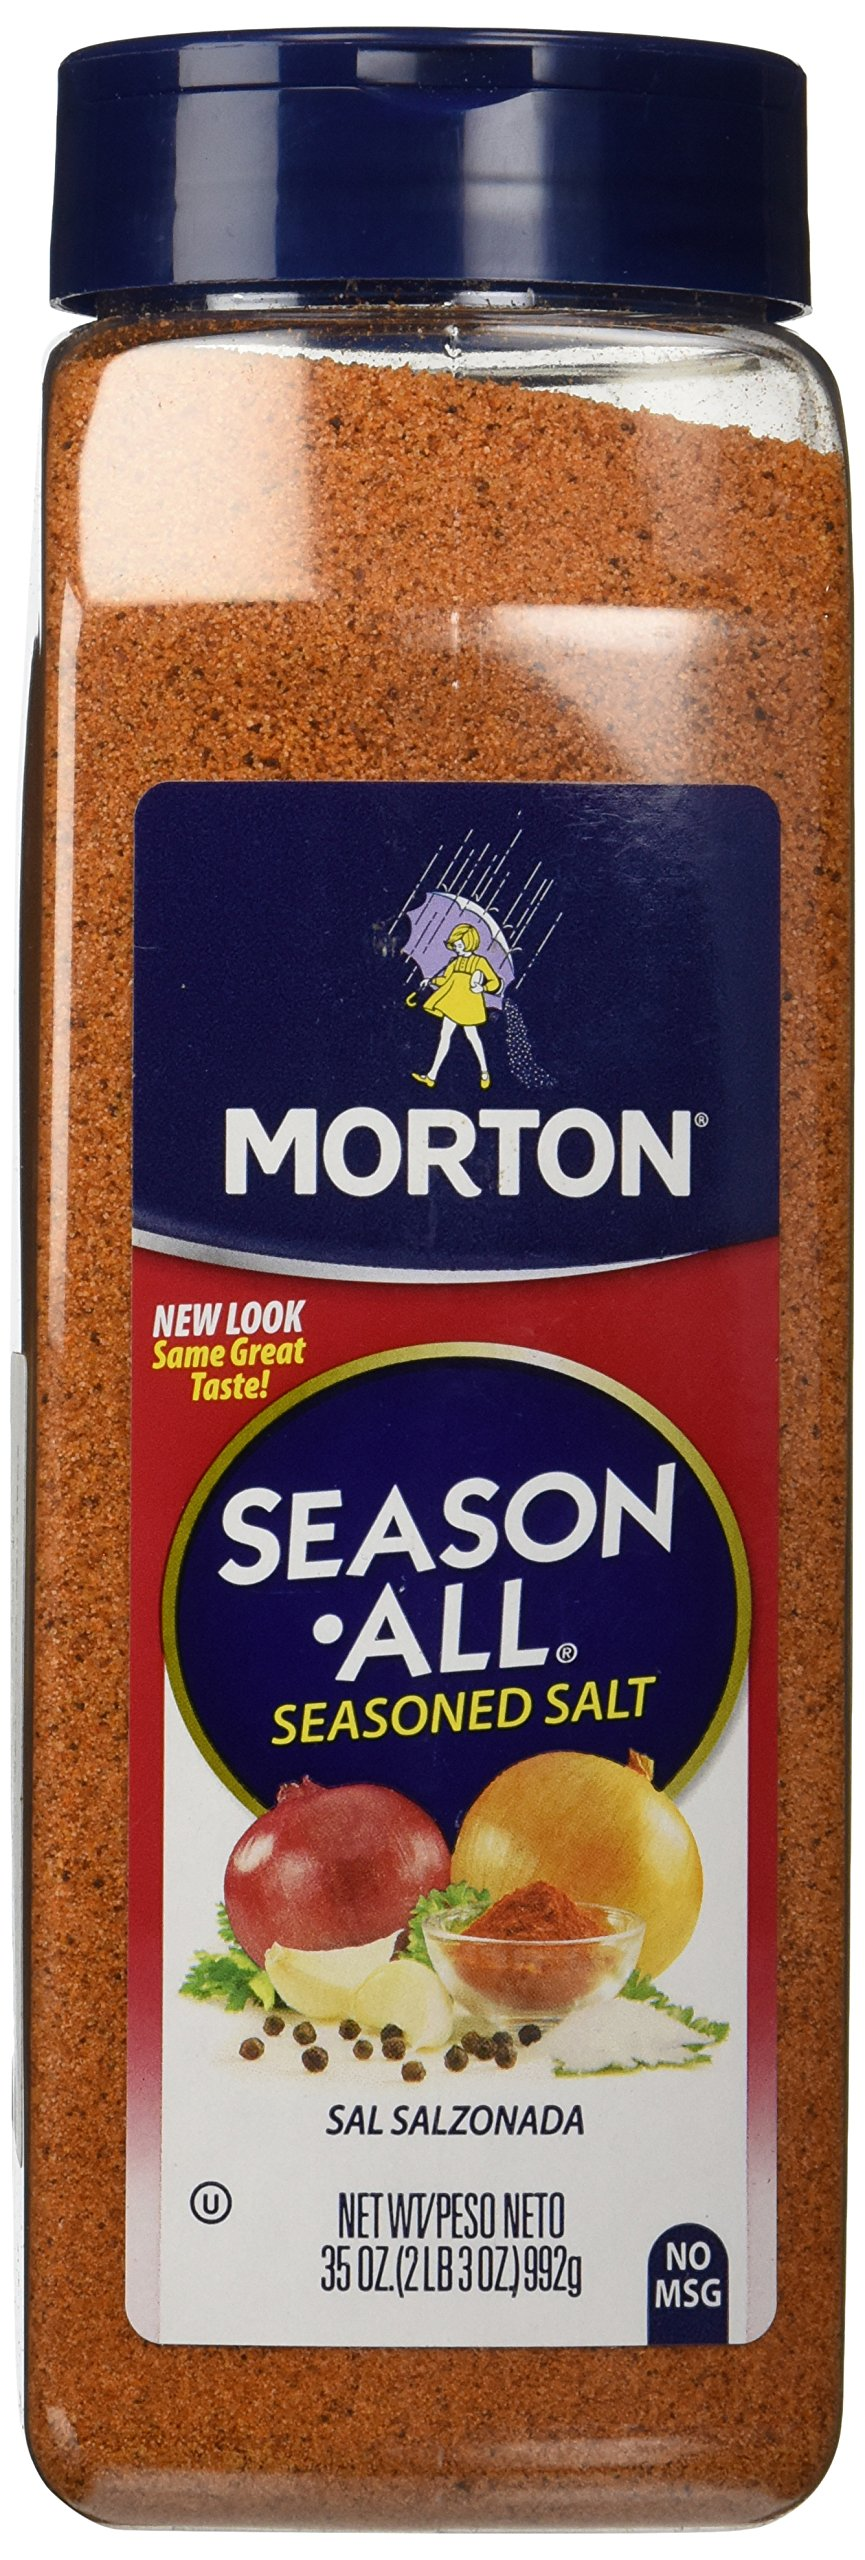 Morton Season-All Seasoned Salt 35oz